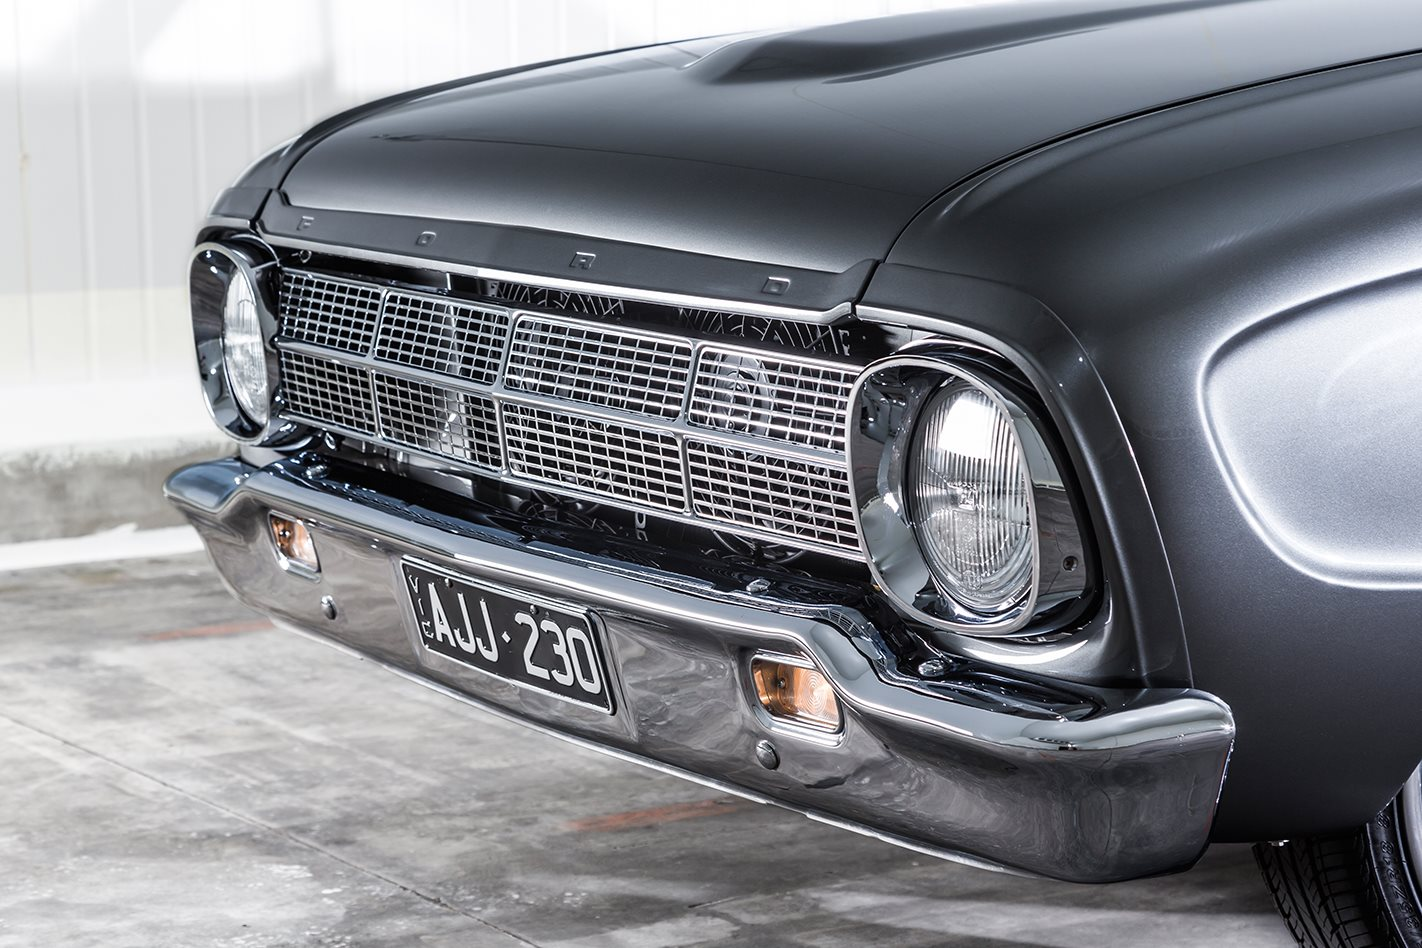 ford falcon xm coupe front grille